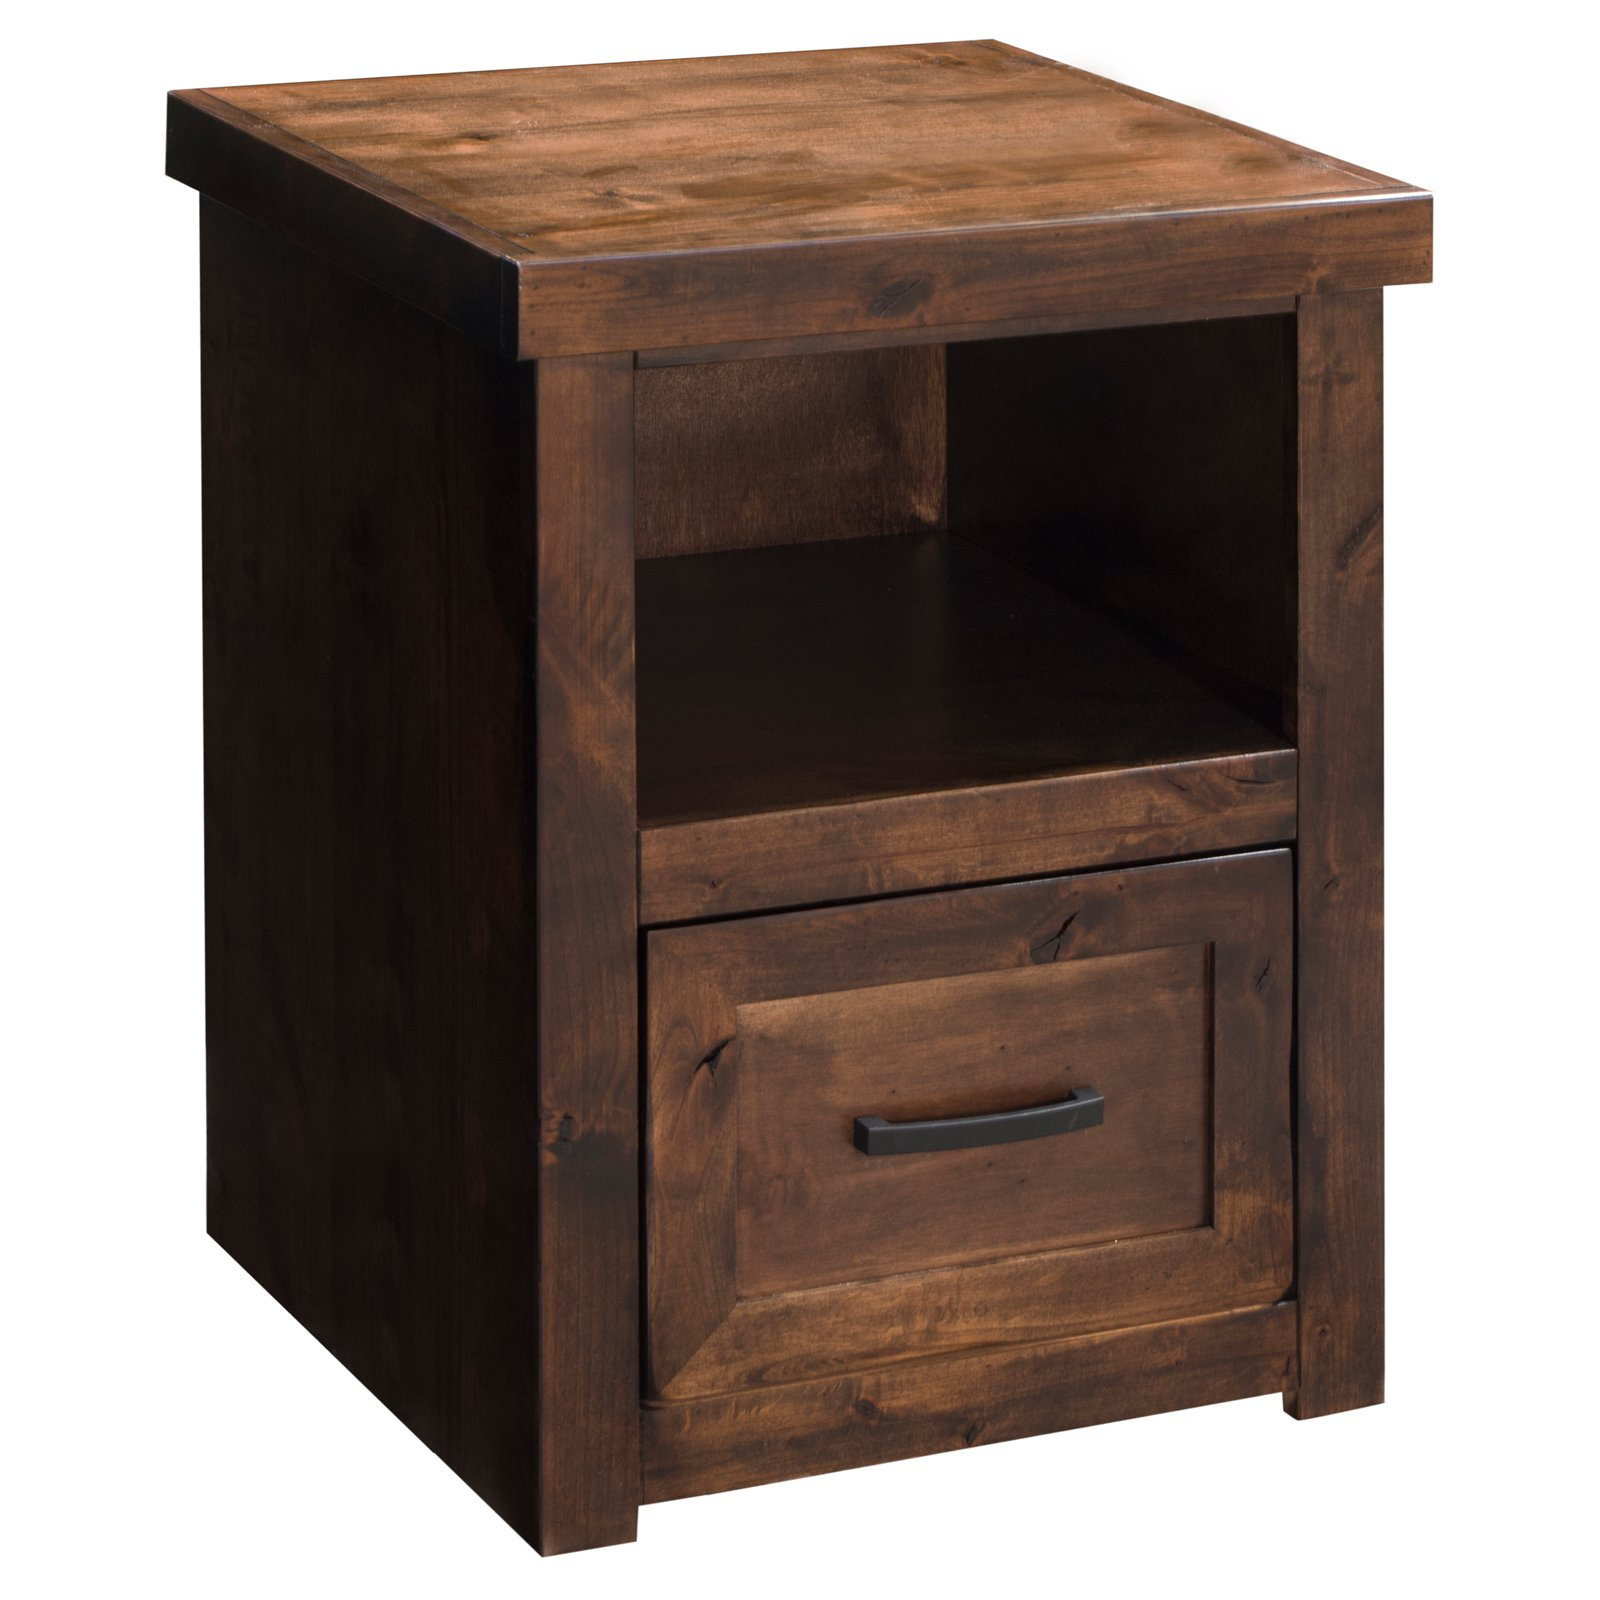 Legends Furniture Sausalito 1 Drawer File Cabinet